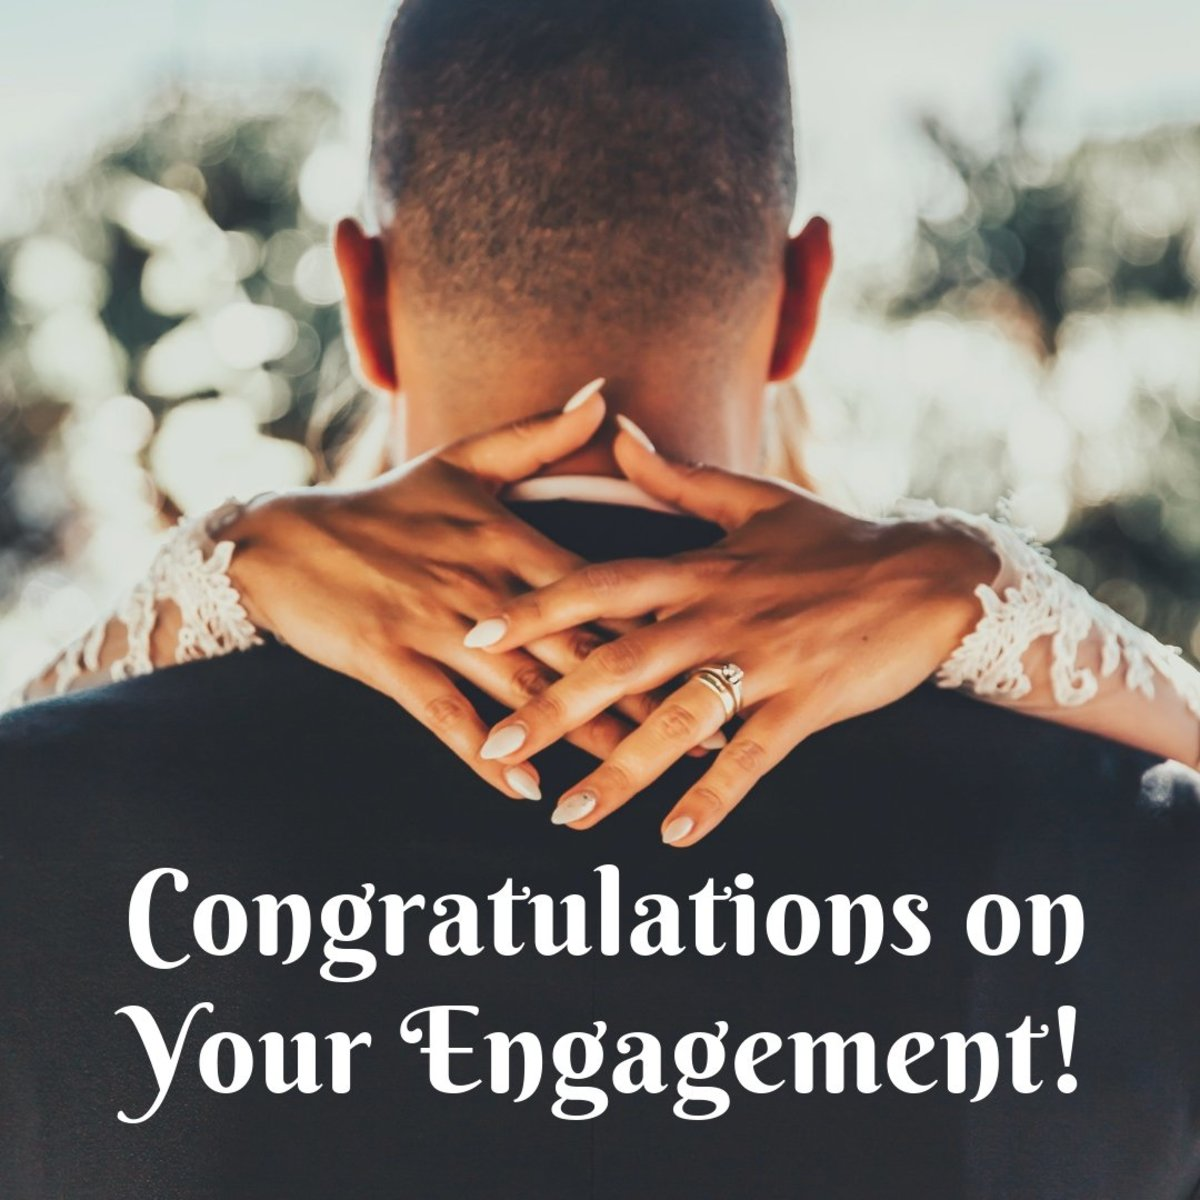 50 Congratulations Messages and Wishes for an Engagement